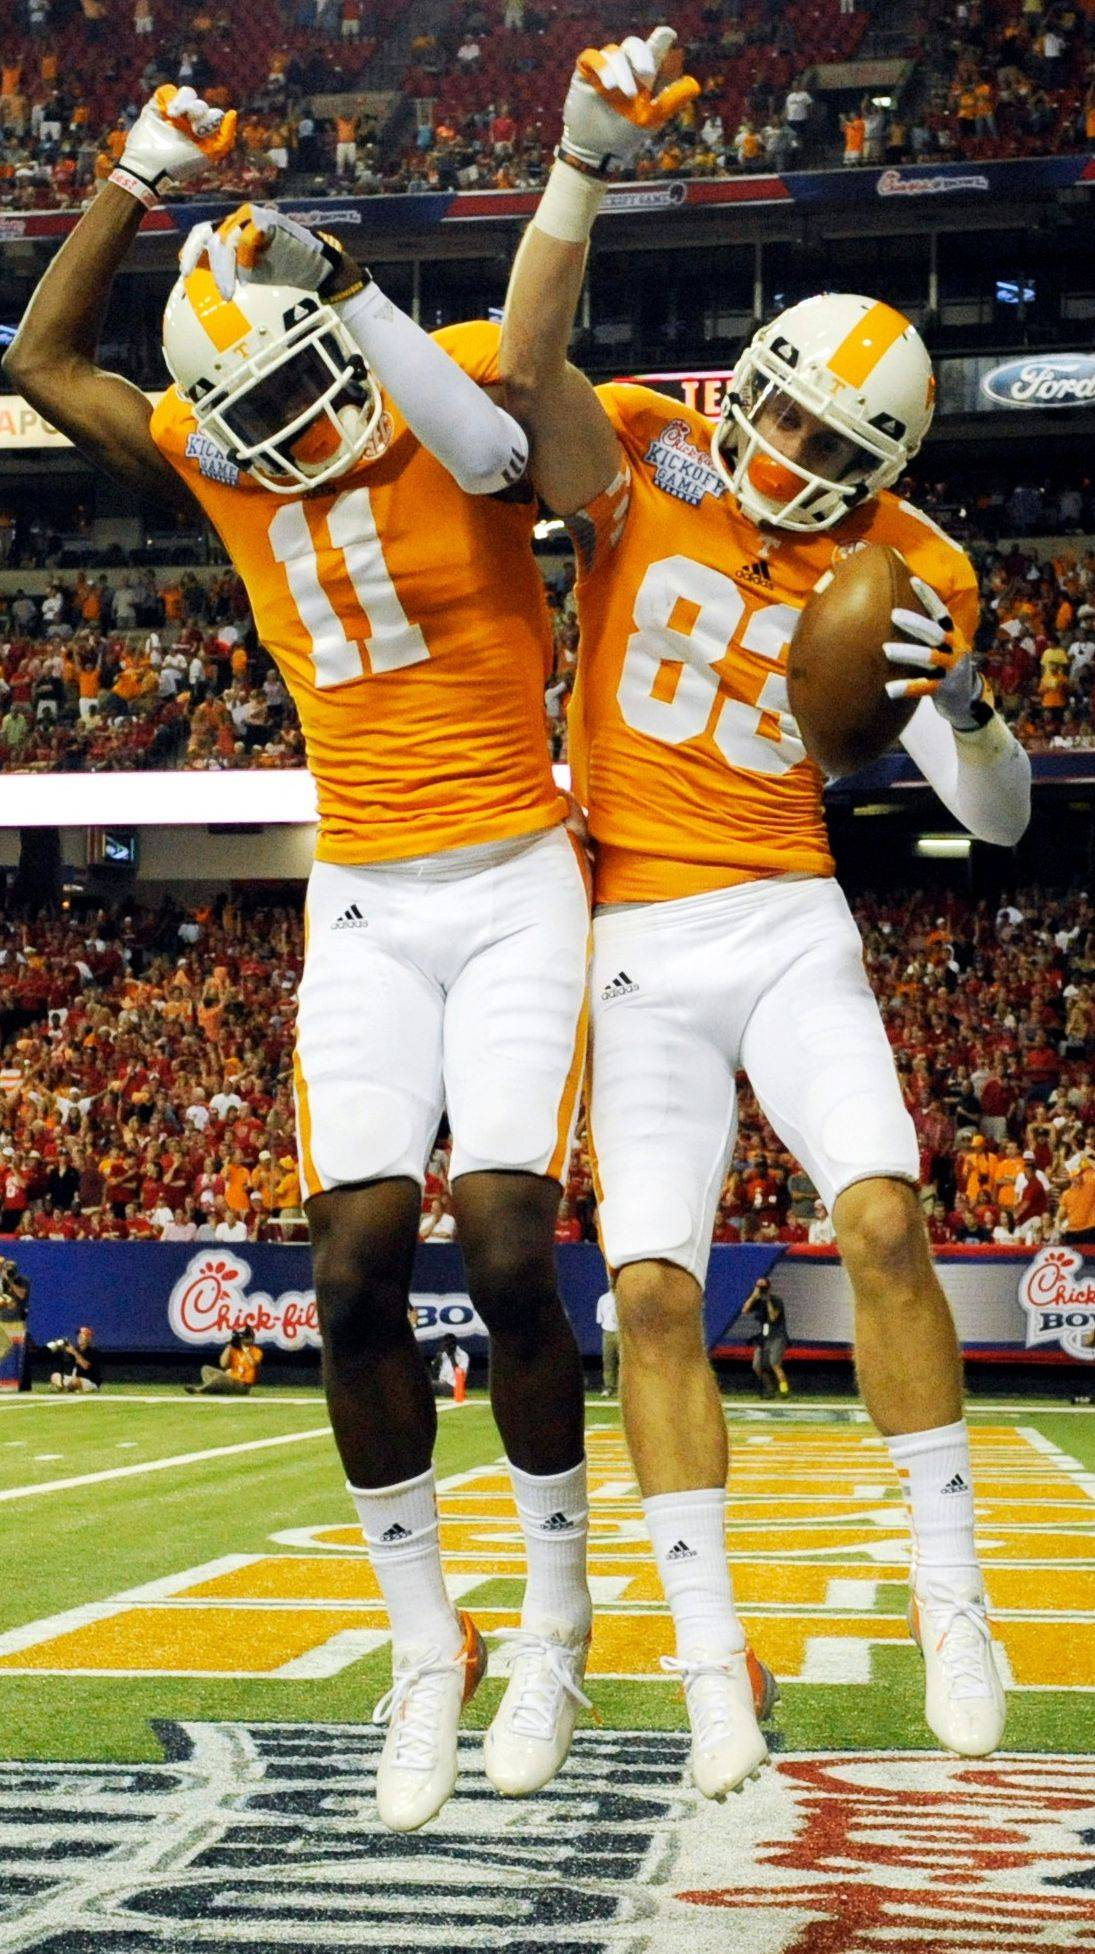 Tennessee's Justin Hunter (11) caught 73 passes last season for 1,083 yards and 9 TDs. He may be the first wide receiver taken in the NFL draft later this month.